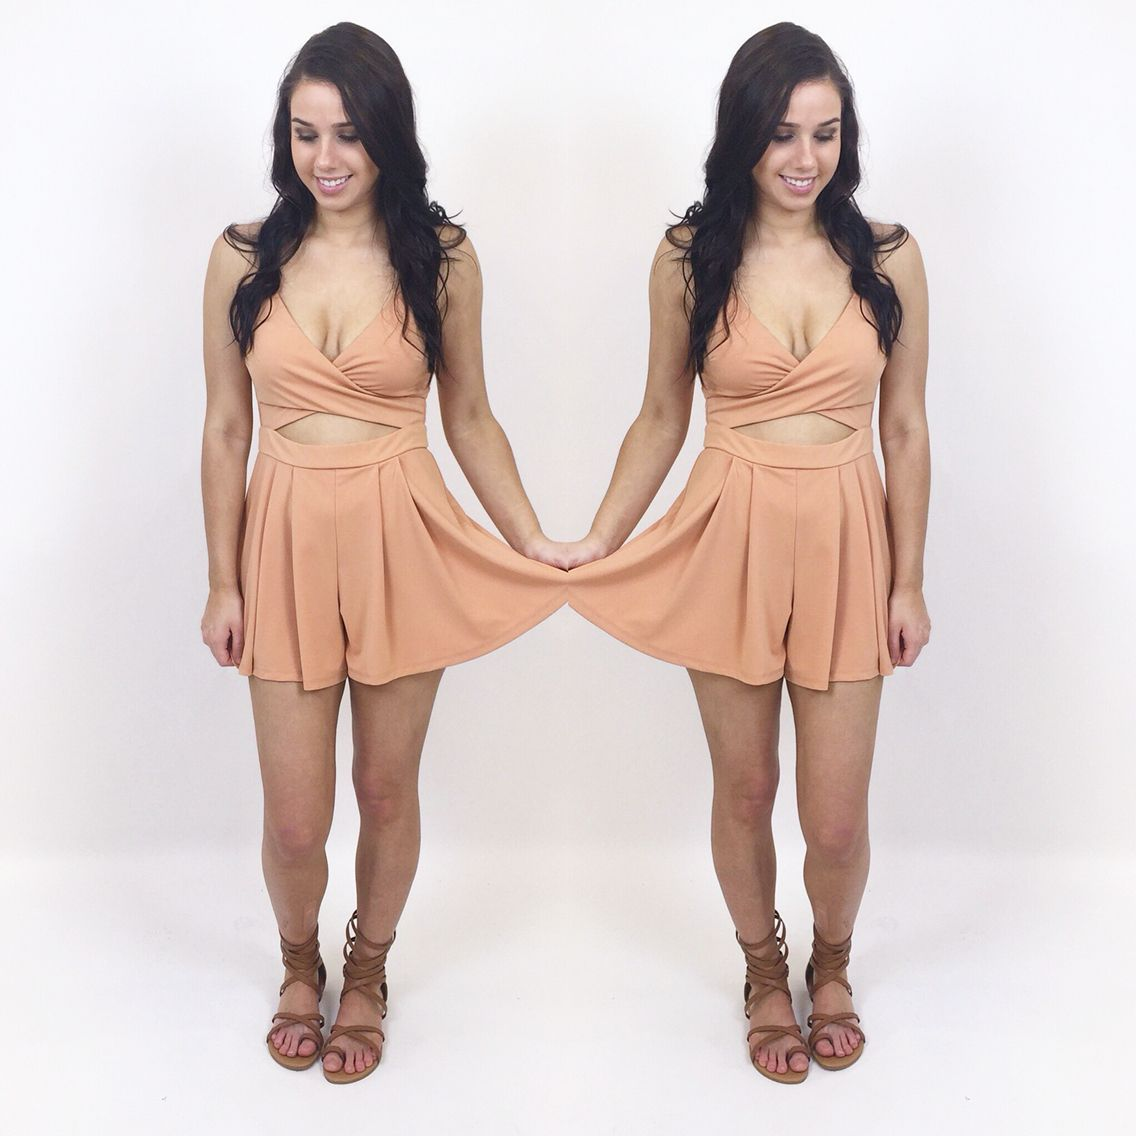 85d64bf6e64 Everyone needs a cute summer outfit to romp around in!!  RompAround   SoSandaled  Romper